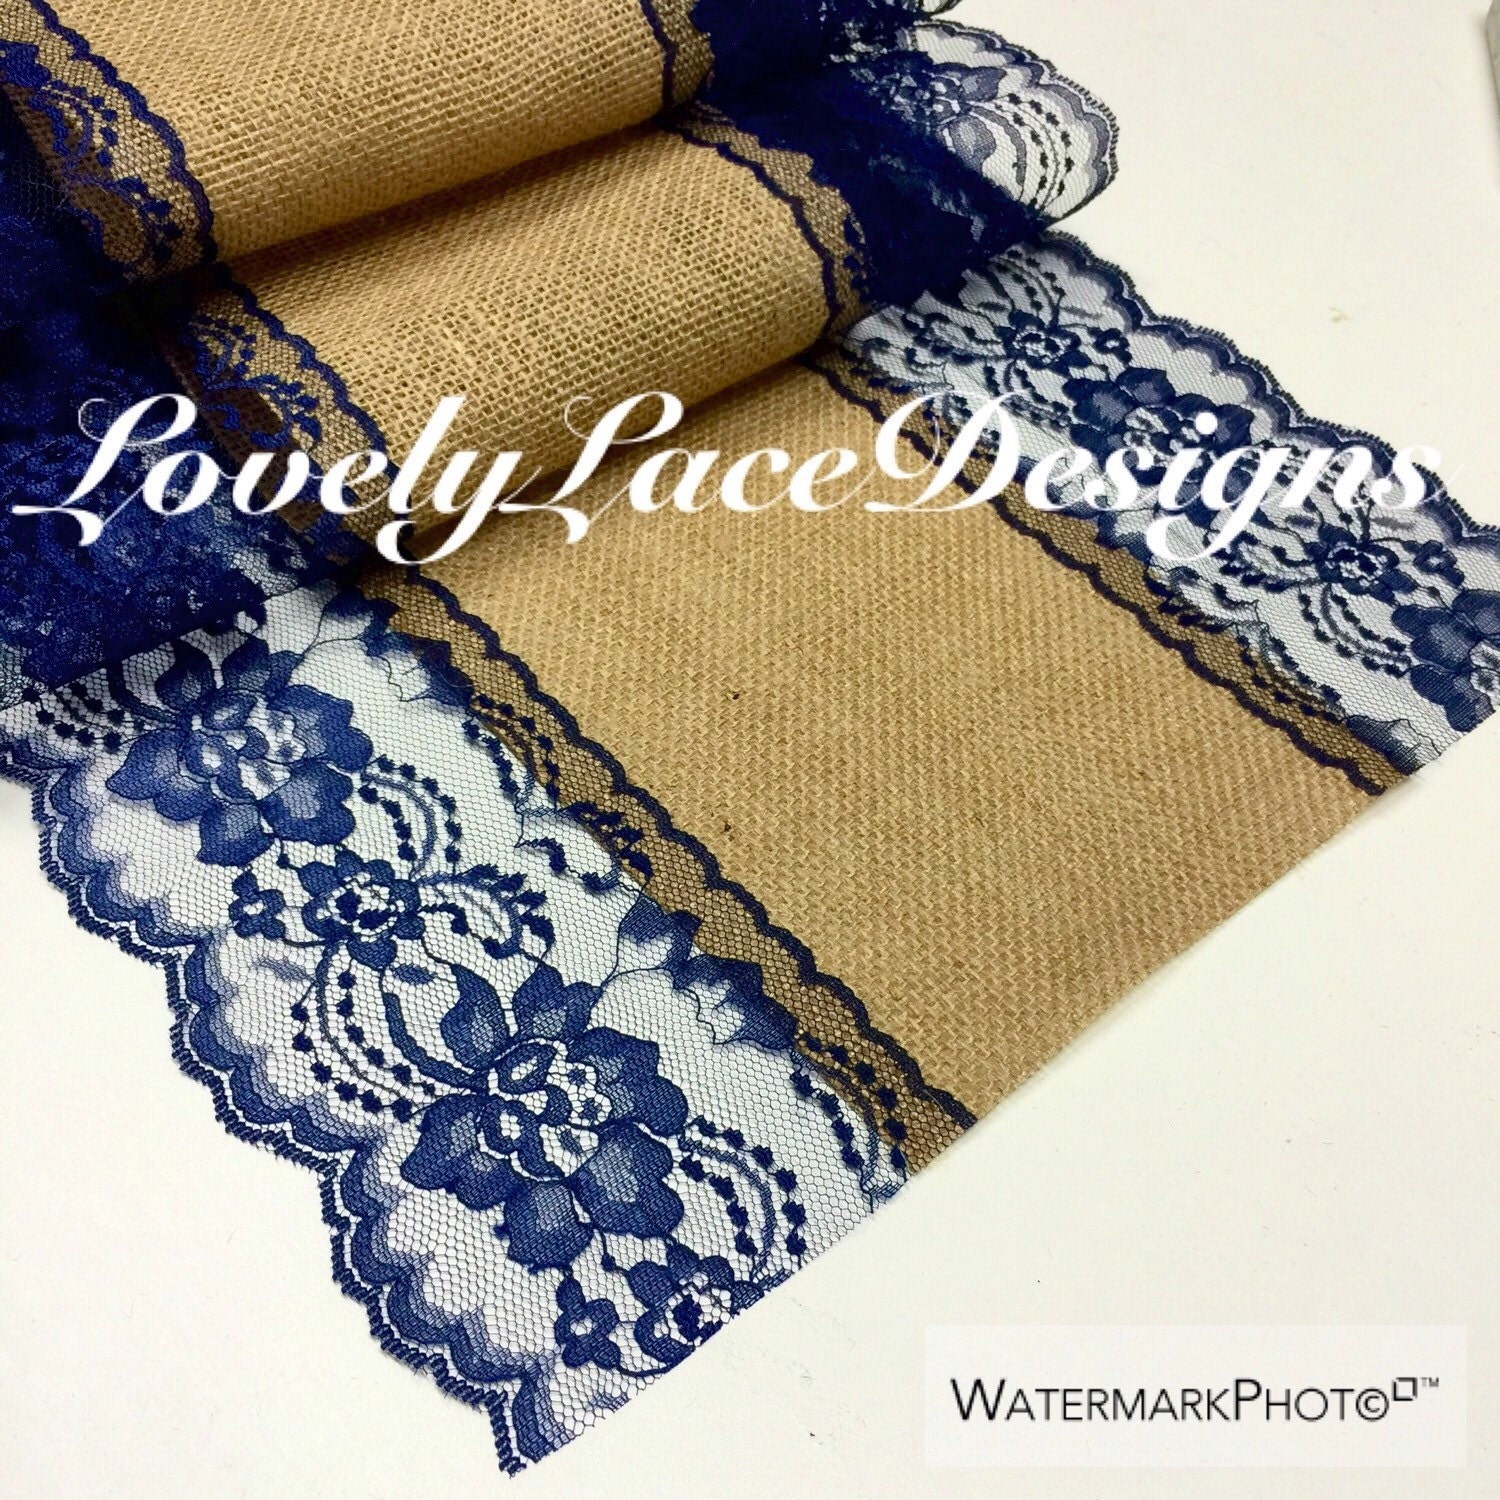 LovelyLaceDesigns